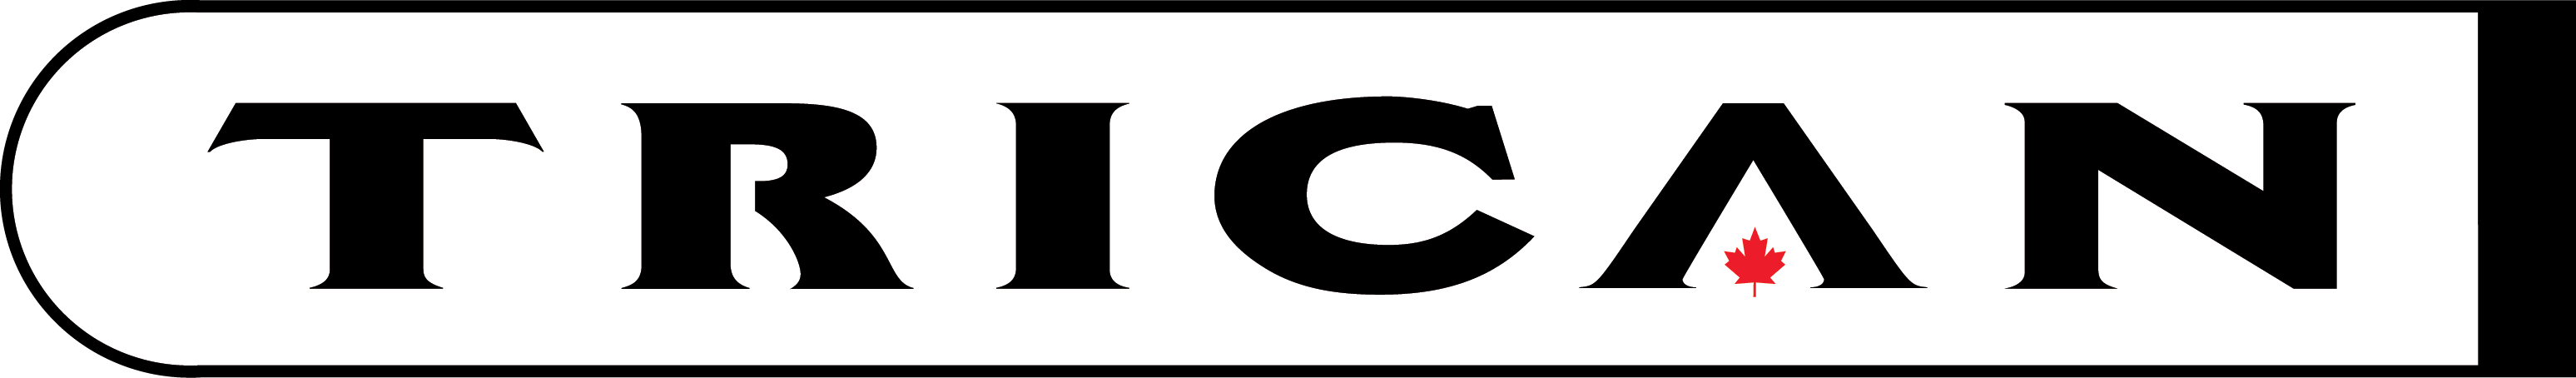 TricanLogo_colour_white_fill.png